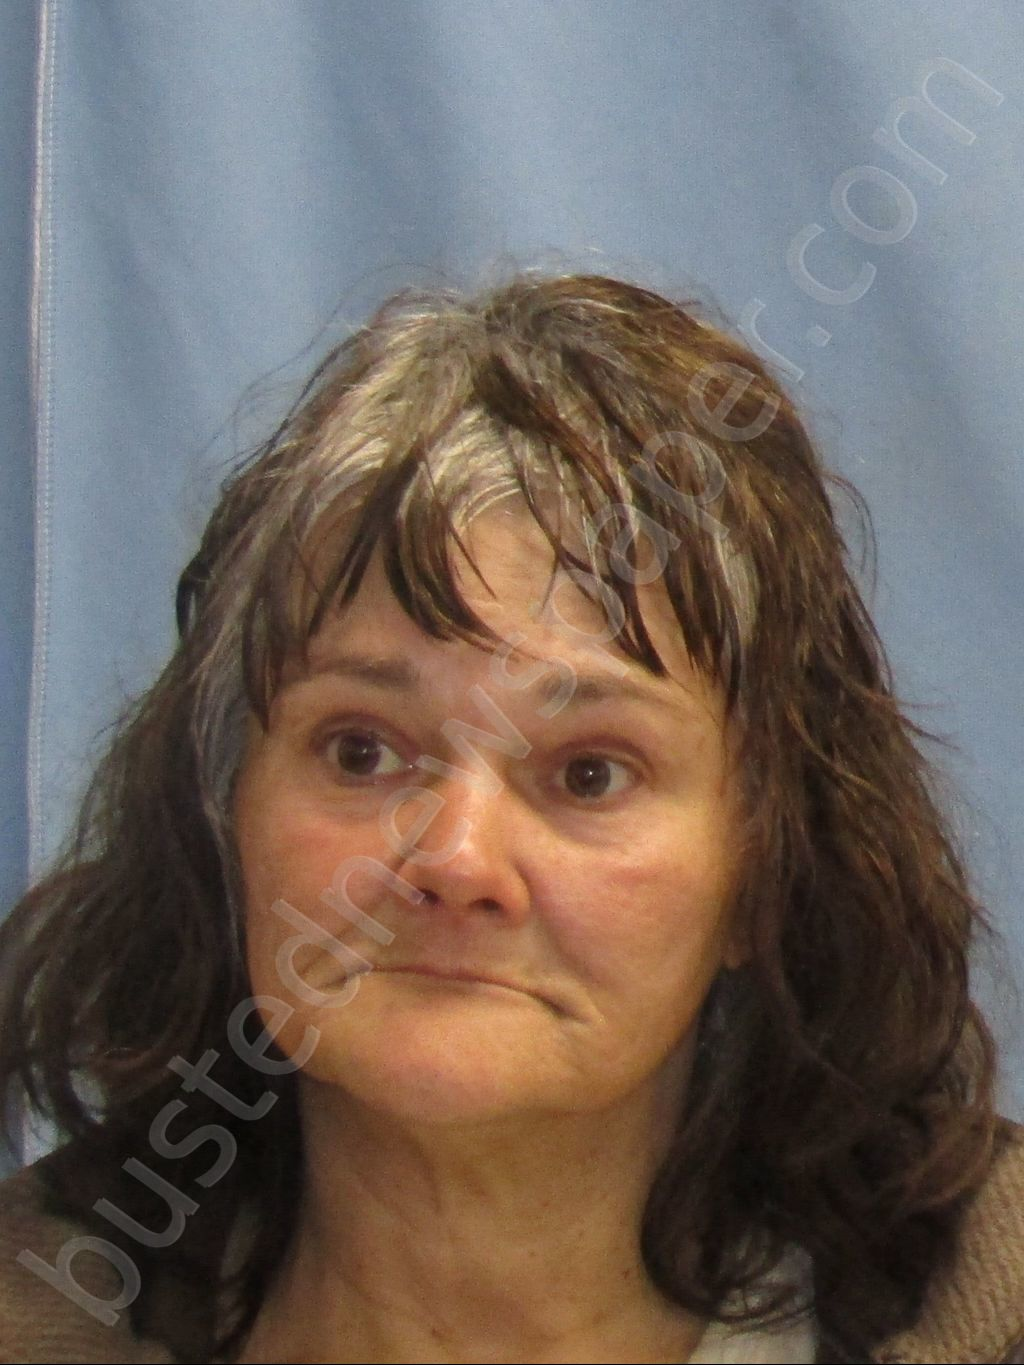 HENSLEY,CINDY LEIGH Mugshot, Pulaski County, Arkansas - 2019